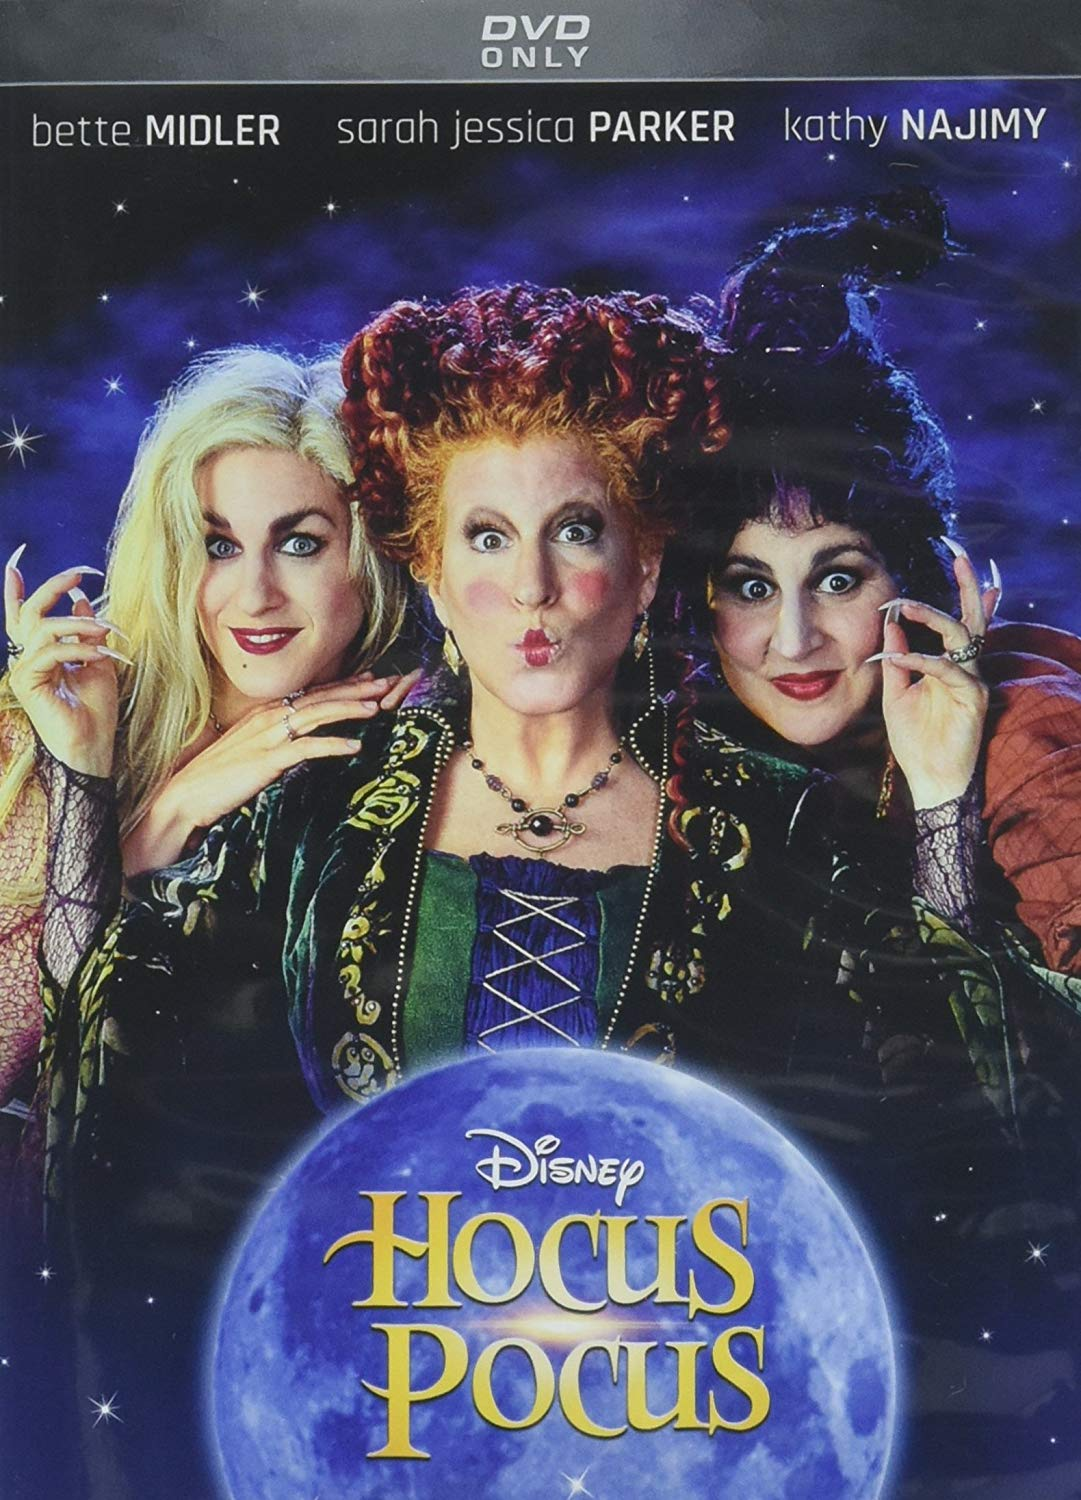 Halloween movie - Hocus Pocus